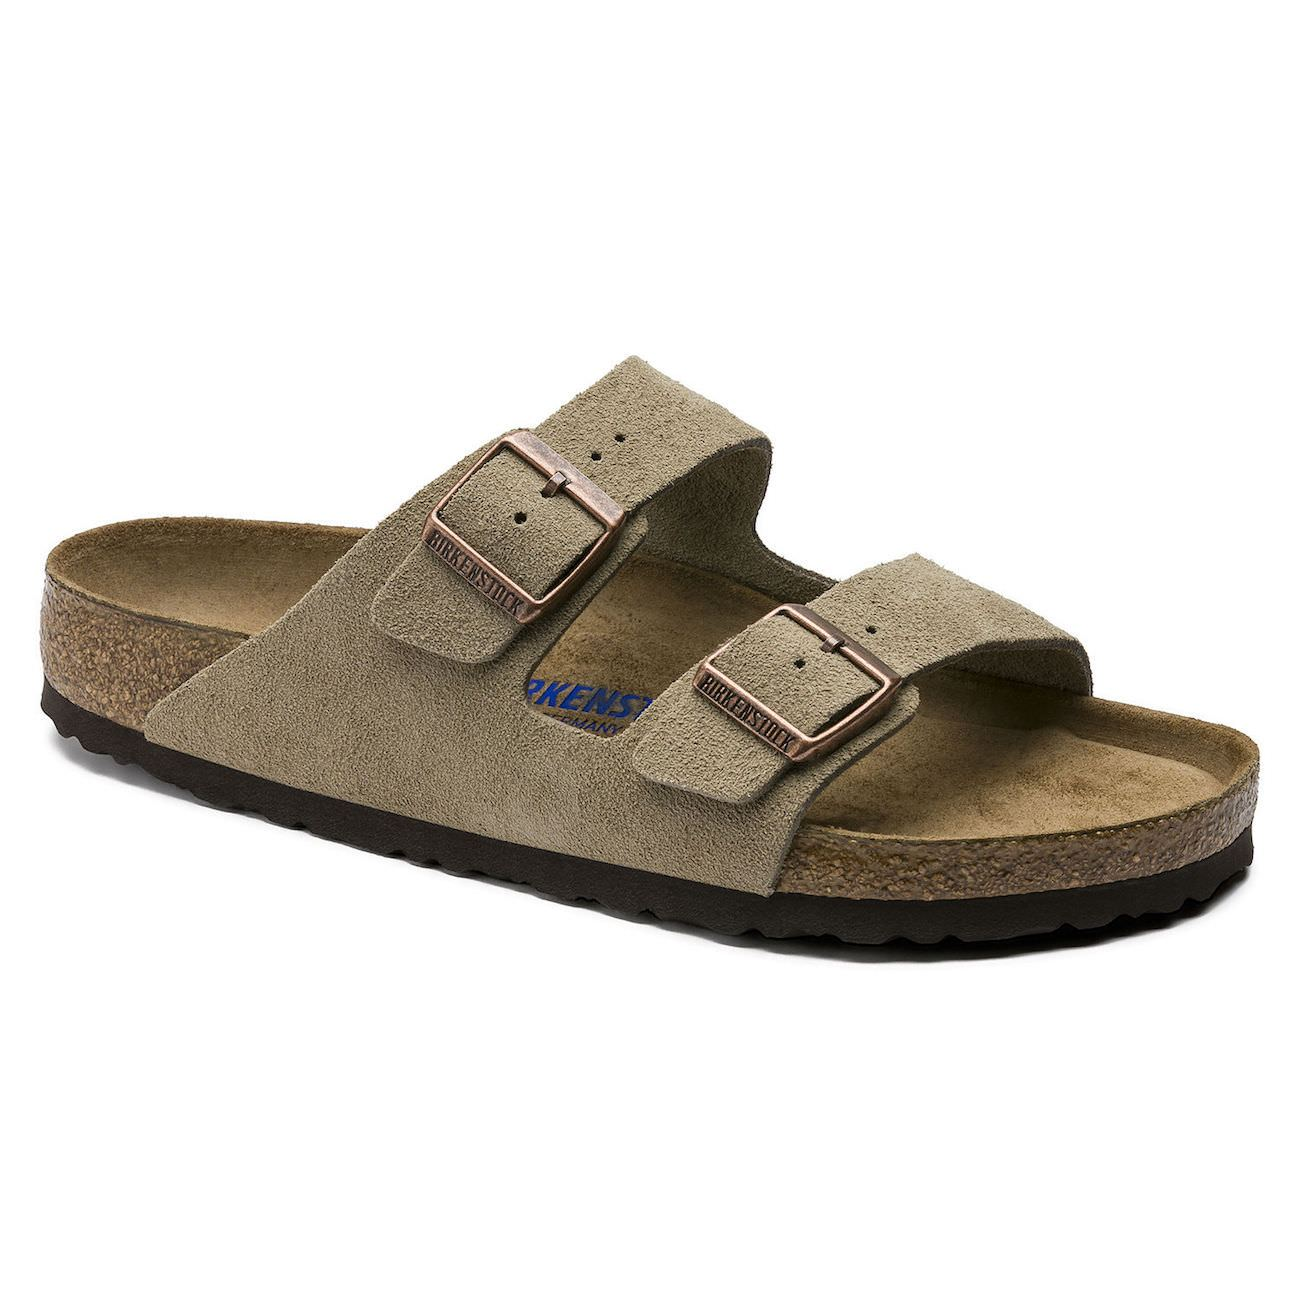 Birkenstock Classic, Arizona, Soft Footbed, Suede Leather, Narrow Fit, Taupe Sandals Birkenstock Classic Taupe 35